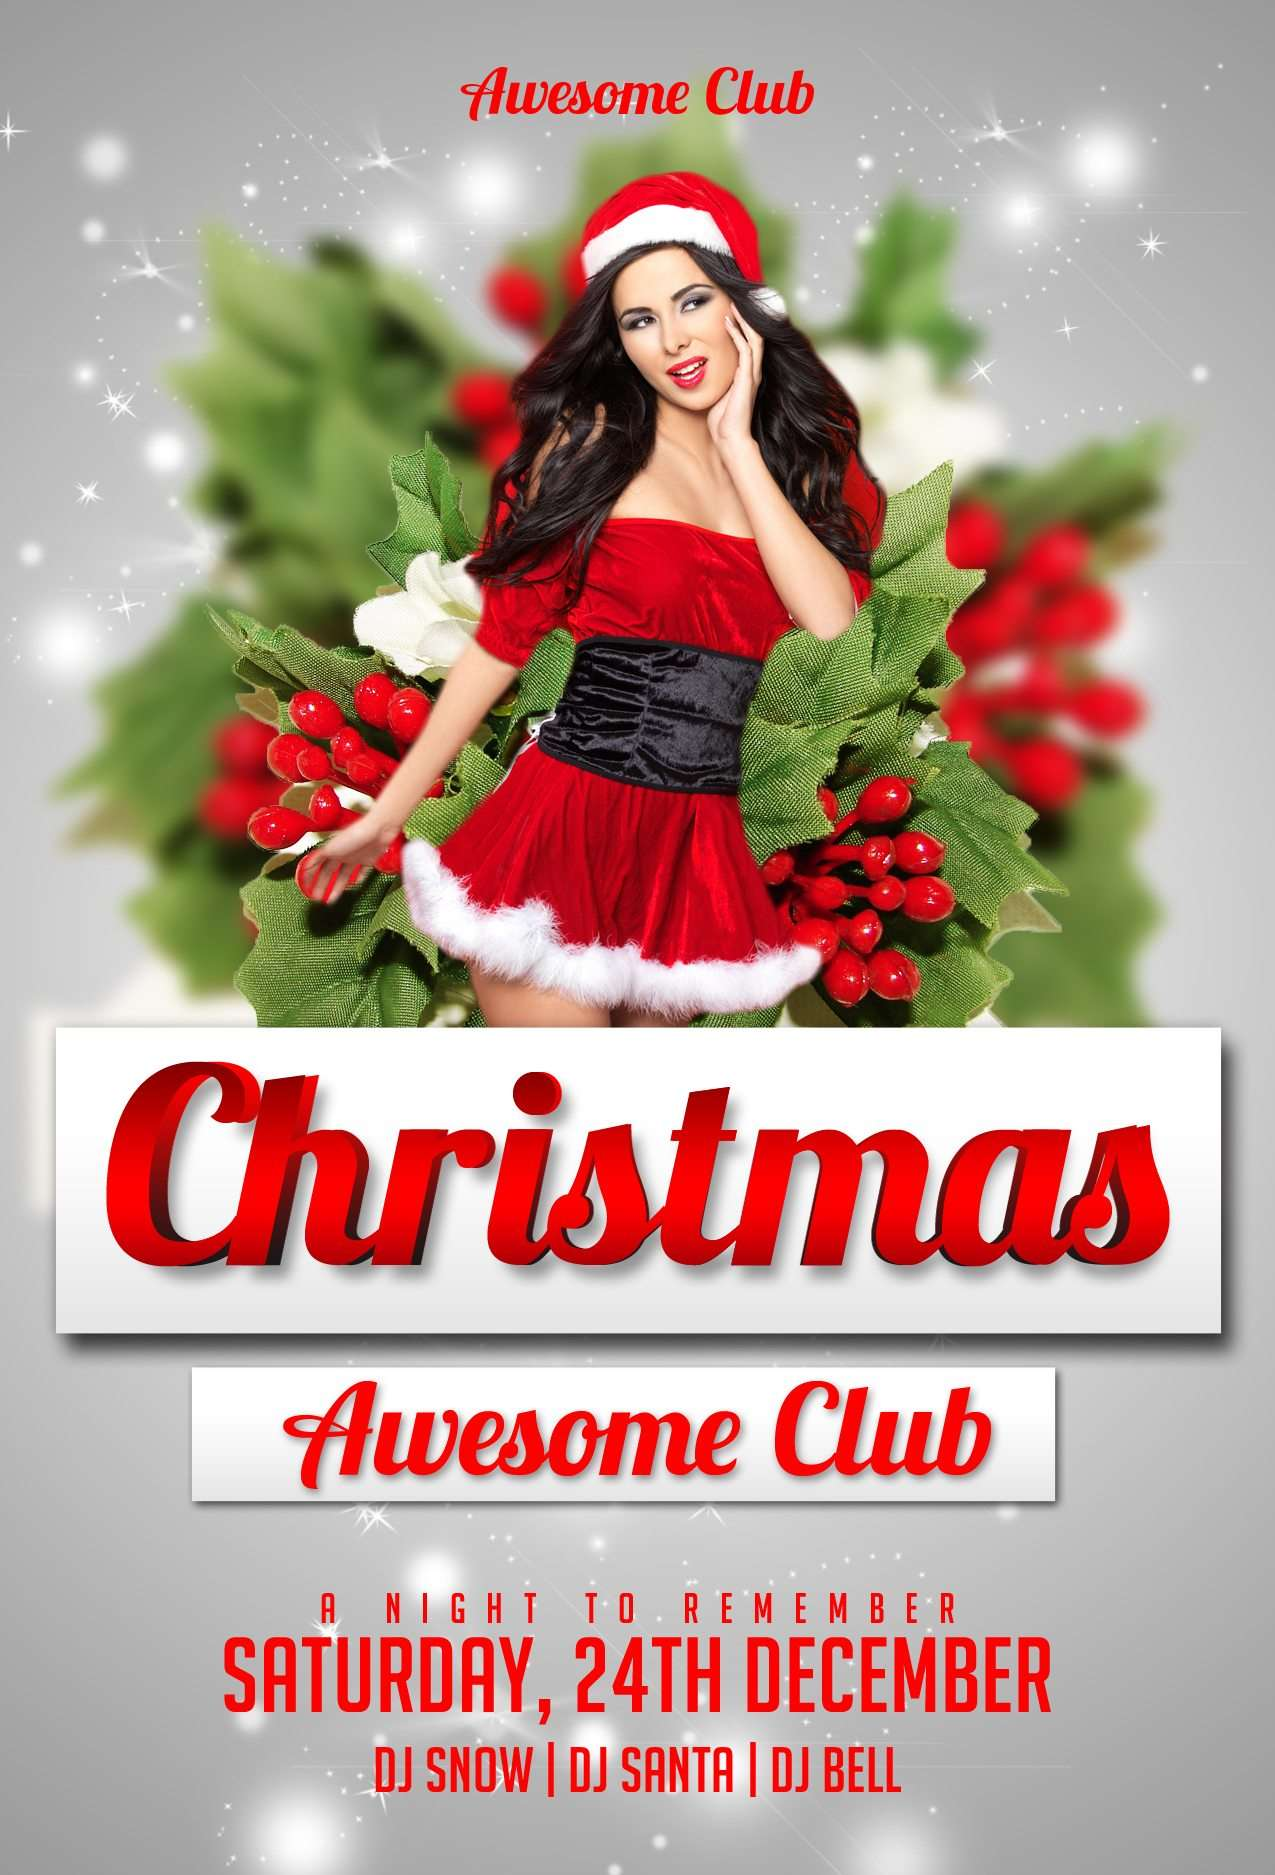 Download the Christmas Free PSD Flyer Template for Photoshop